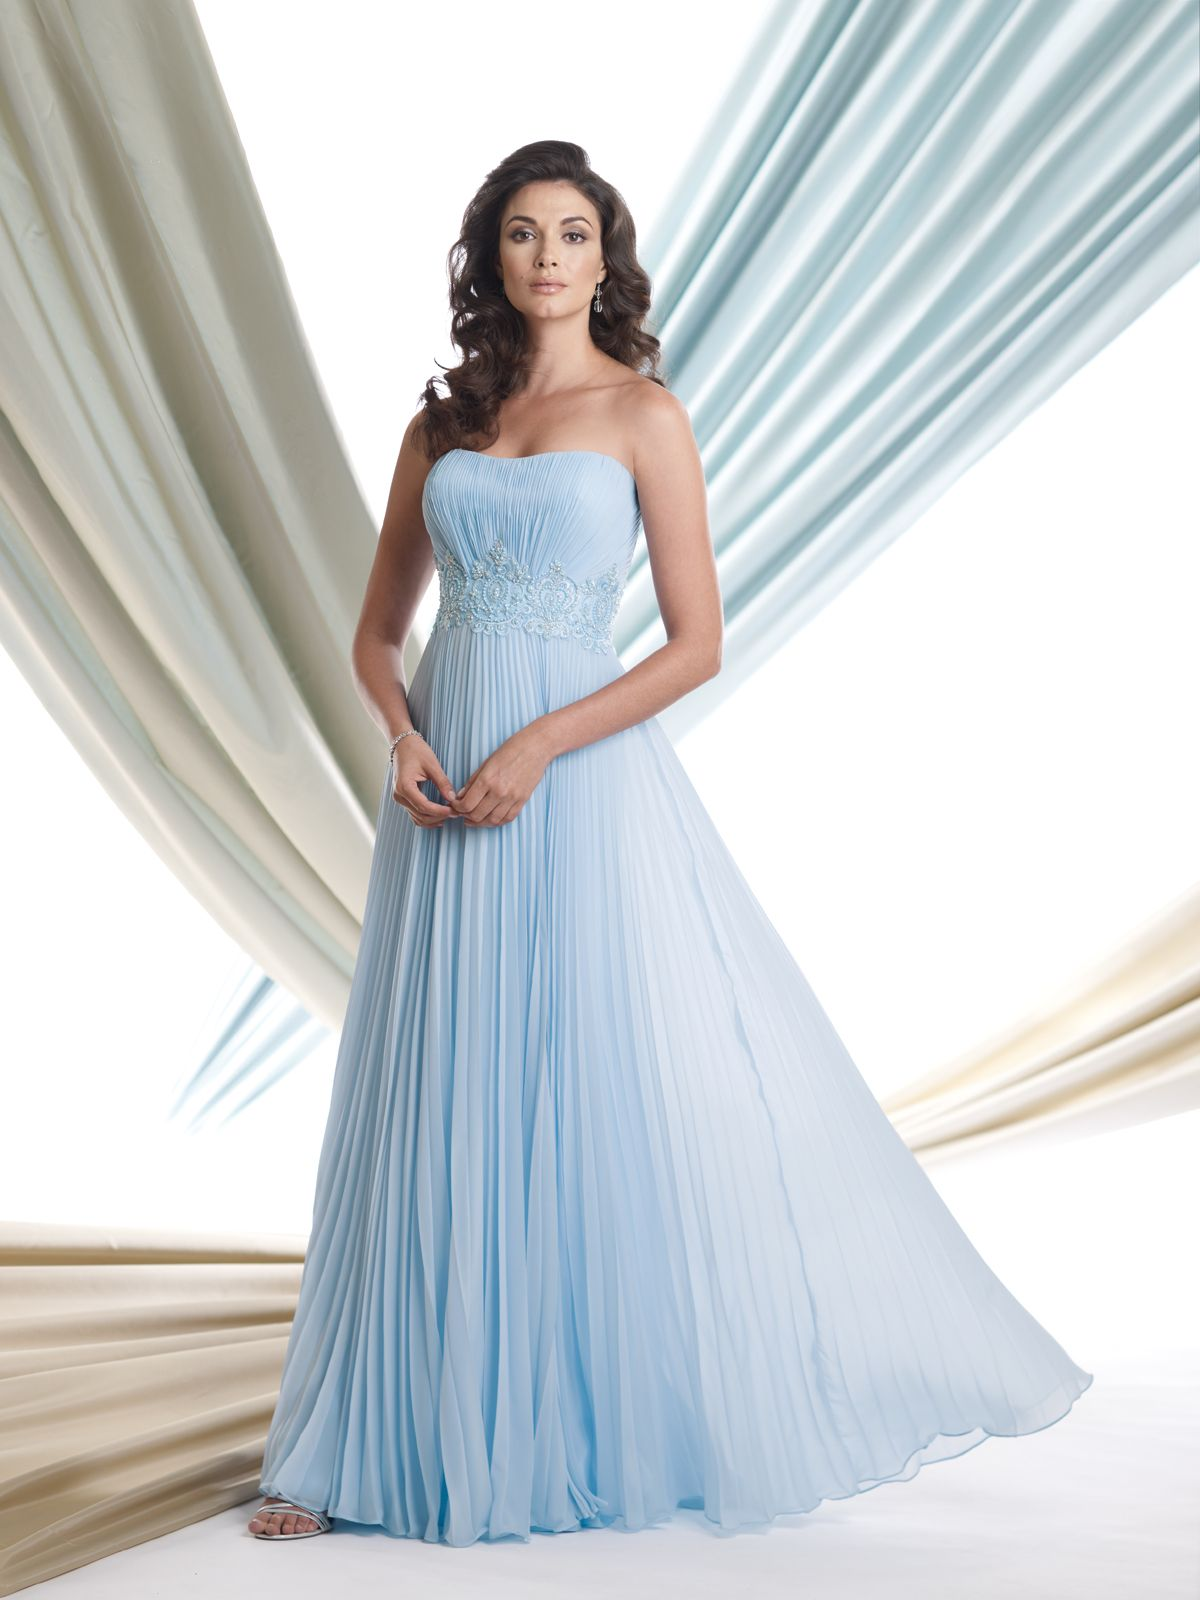 Size 20 a line wedding dress  Strapless pleated velvet chiffon full Aline dress with softly